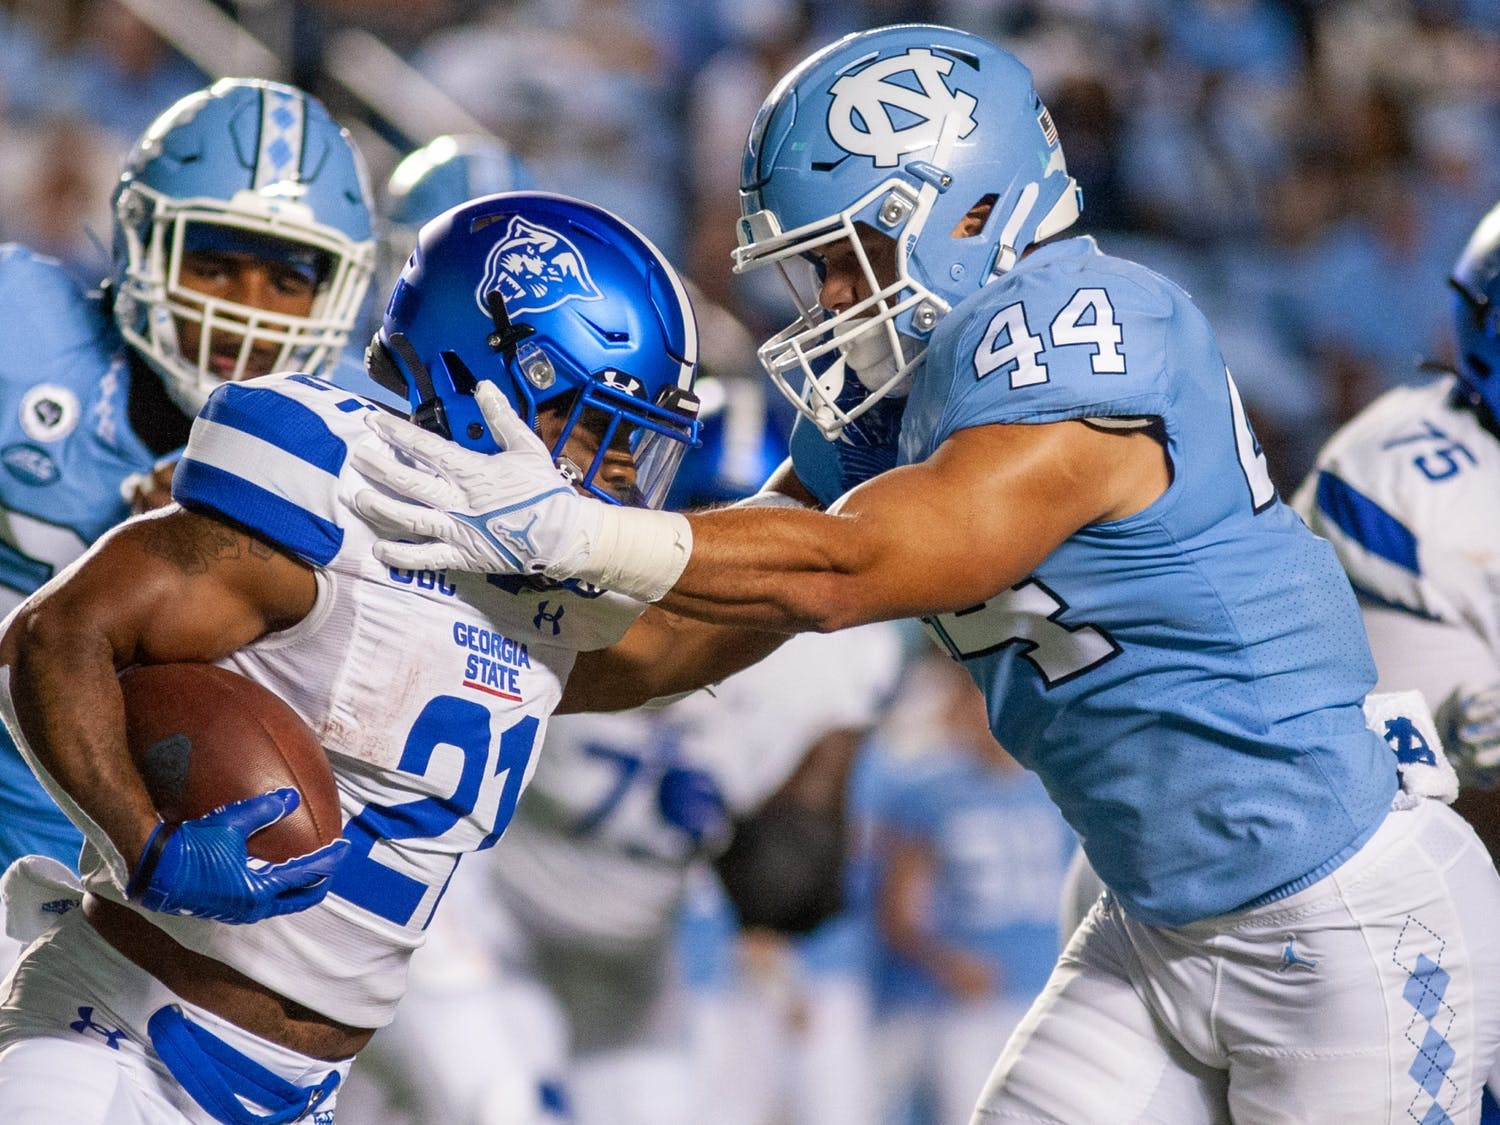 UNC football triumphed over the Georgia State Panthers 59-17 in a home matchup on Sept. 11, 2021. The match was the Tar Heels' first home game of the season and the first home football game at full capacity since the beginning of the COVID-19 pandemic.